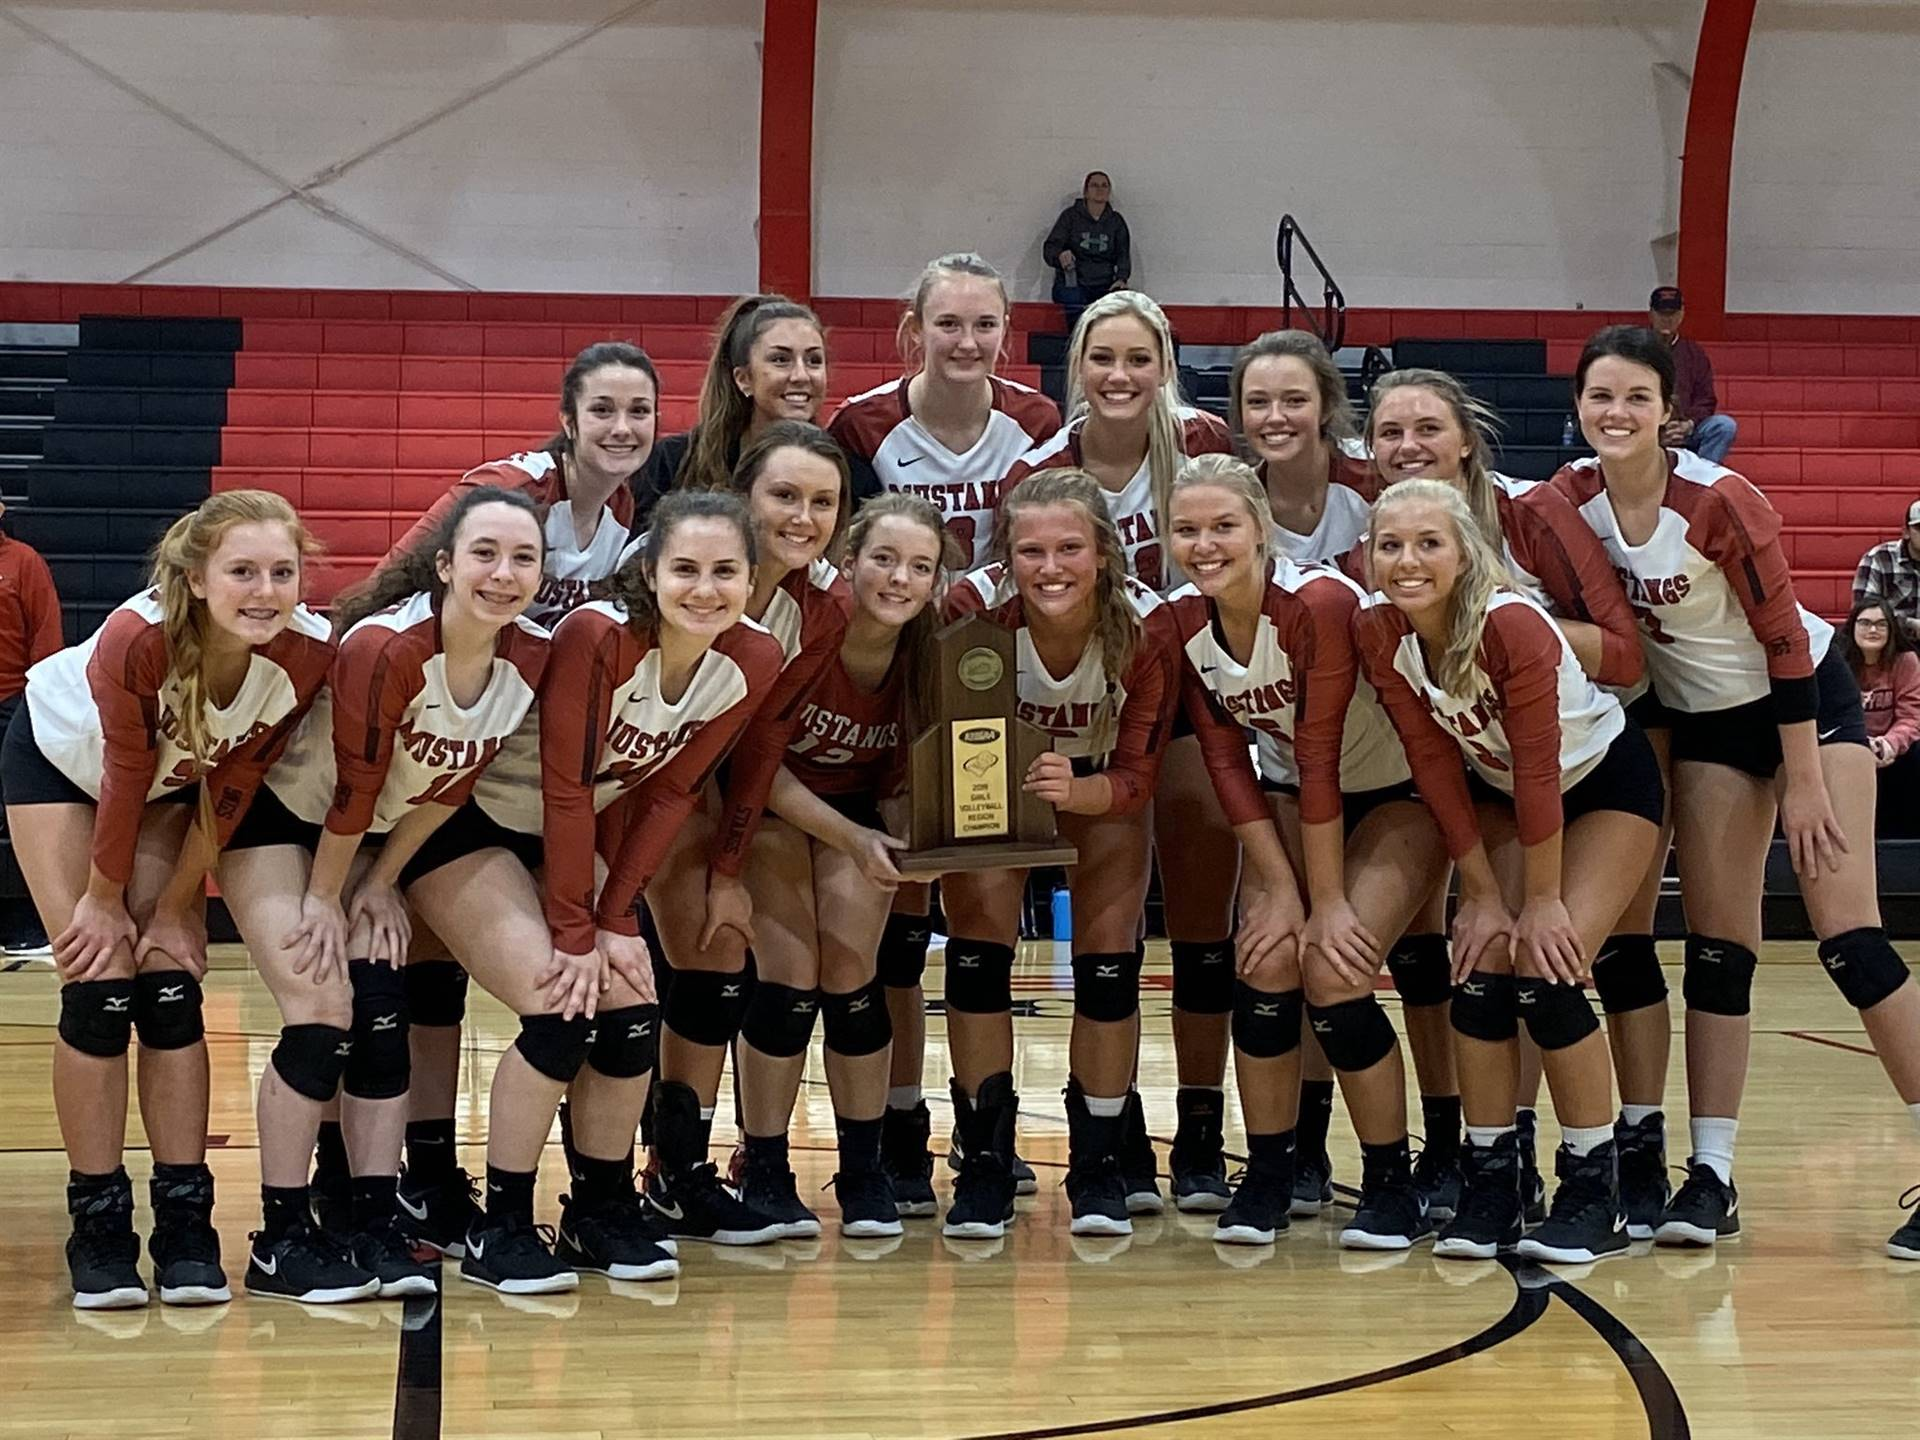 Mustangs Volleyball - 2019 District Champions!